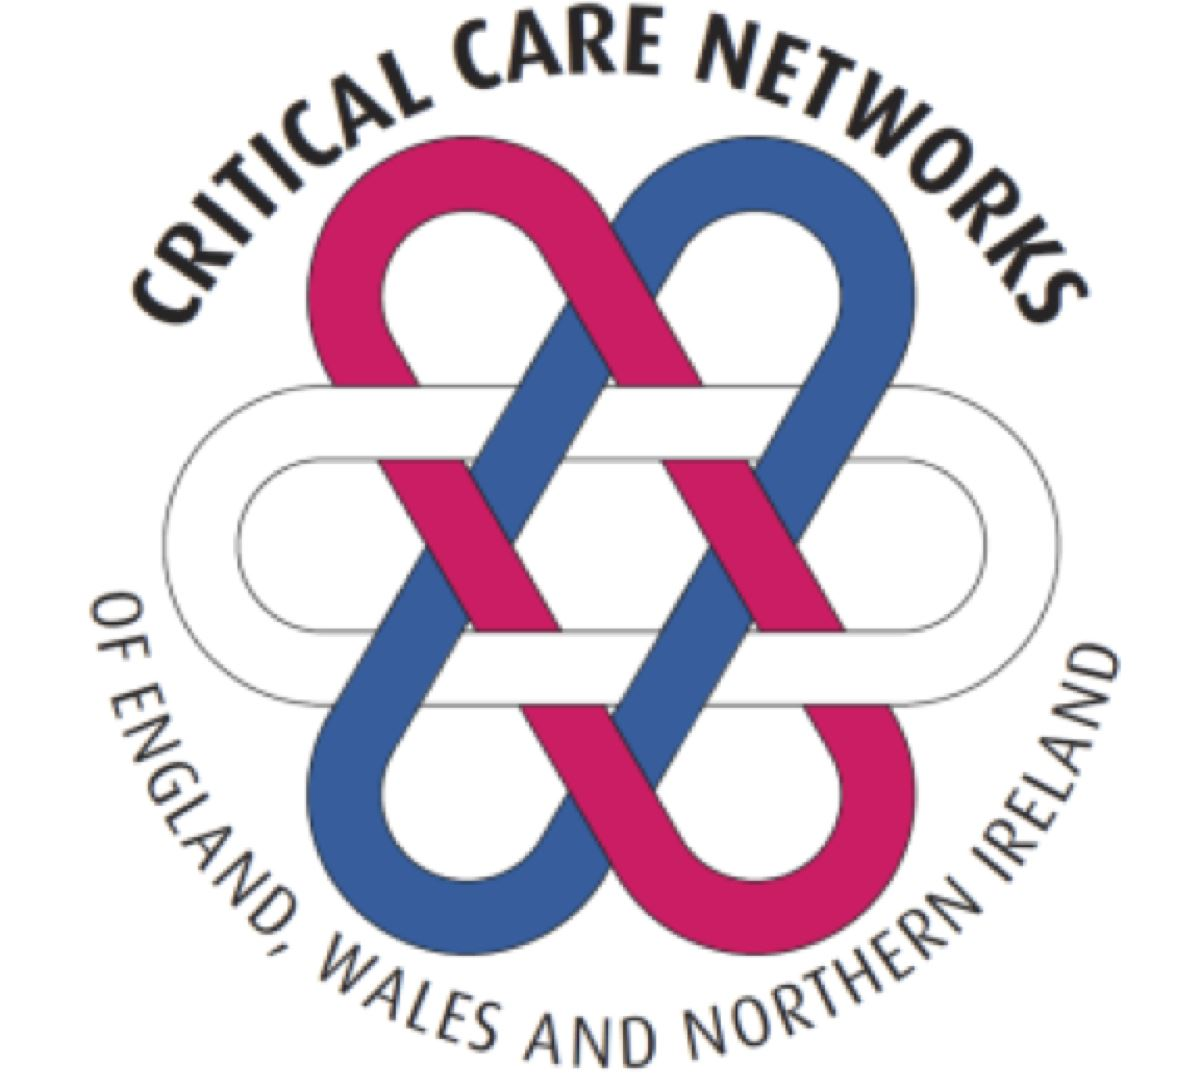 north of england critical care network home in 2013 nhs england launched operational delivery networks odns following the publication of the nhs england strategy to sustain and develop